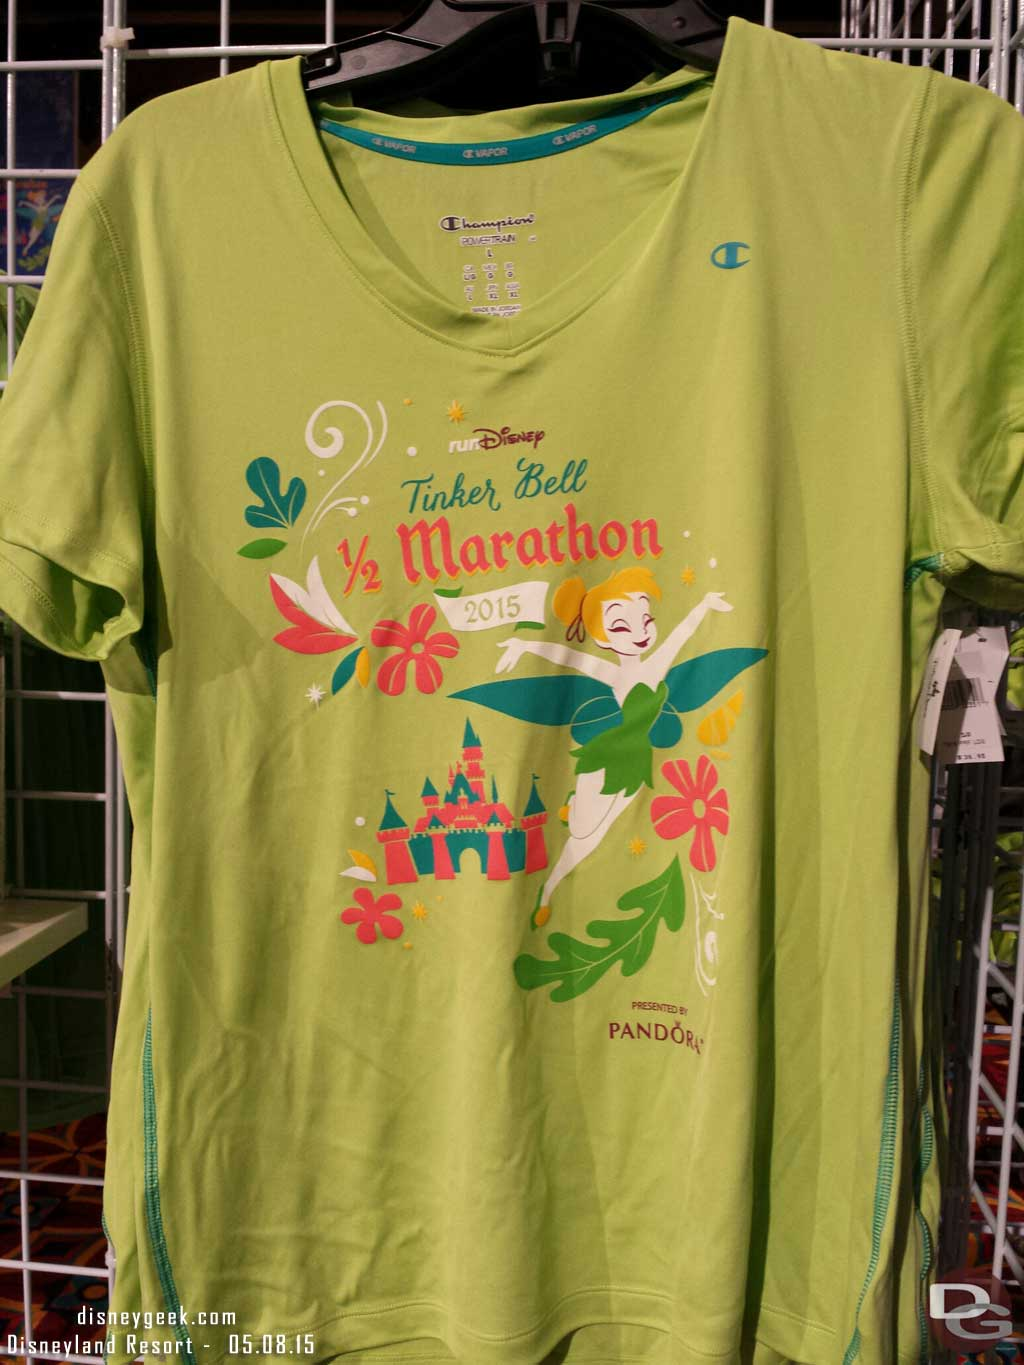 #TinkHalf Marathon T-shirt